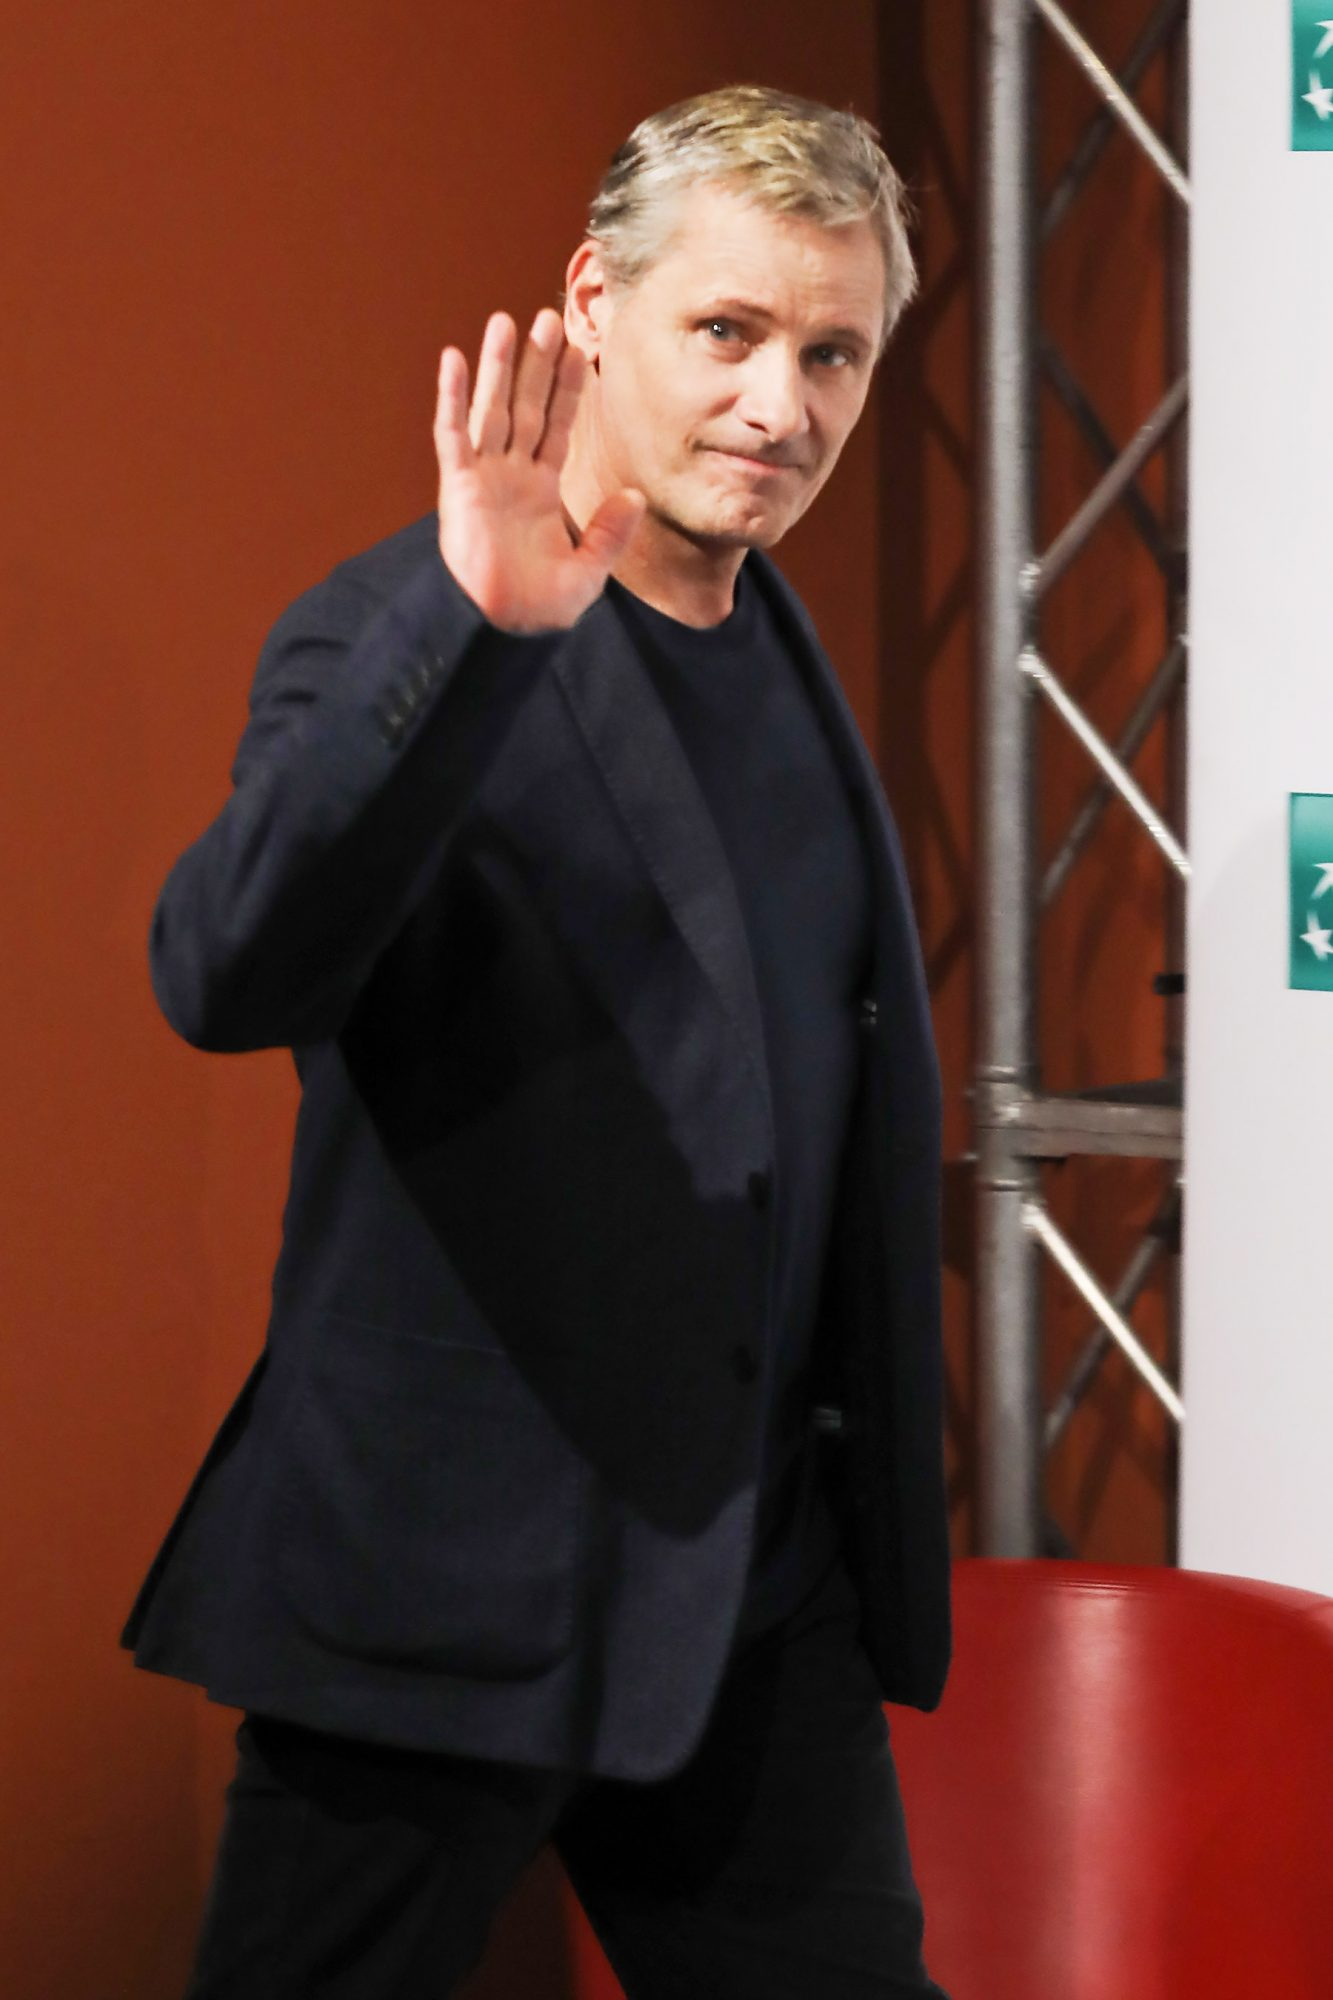 'Green Book' photocall, Rome Film Festival, Italy - 24 Oct 2018